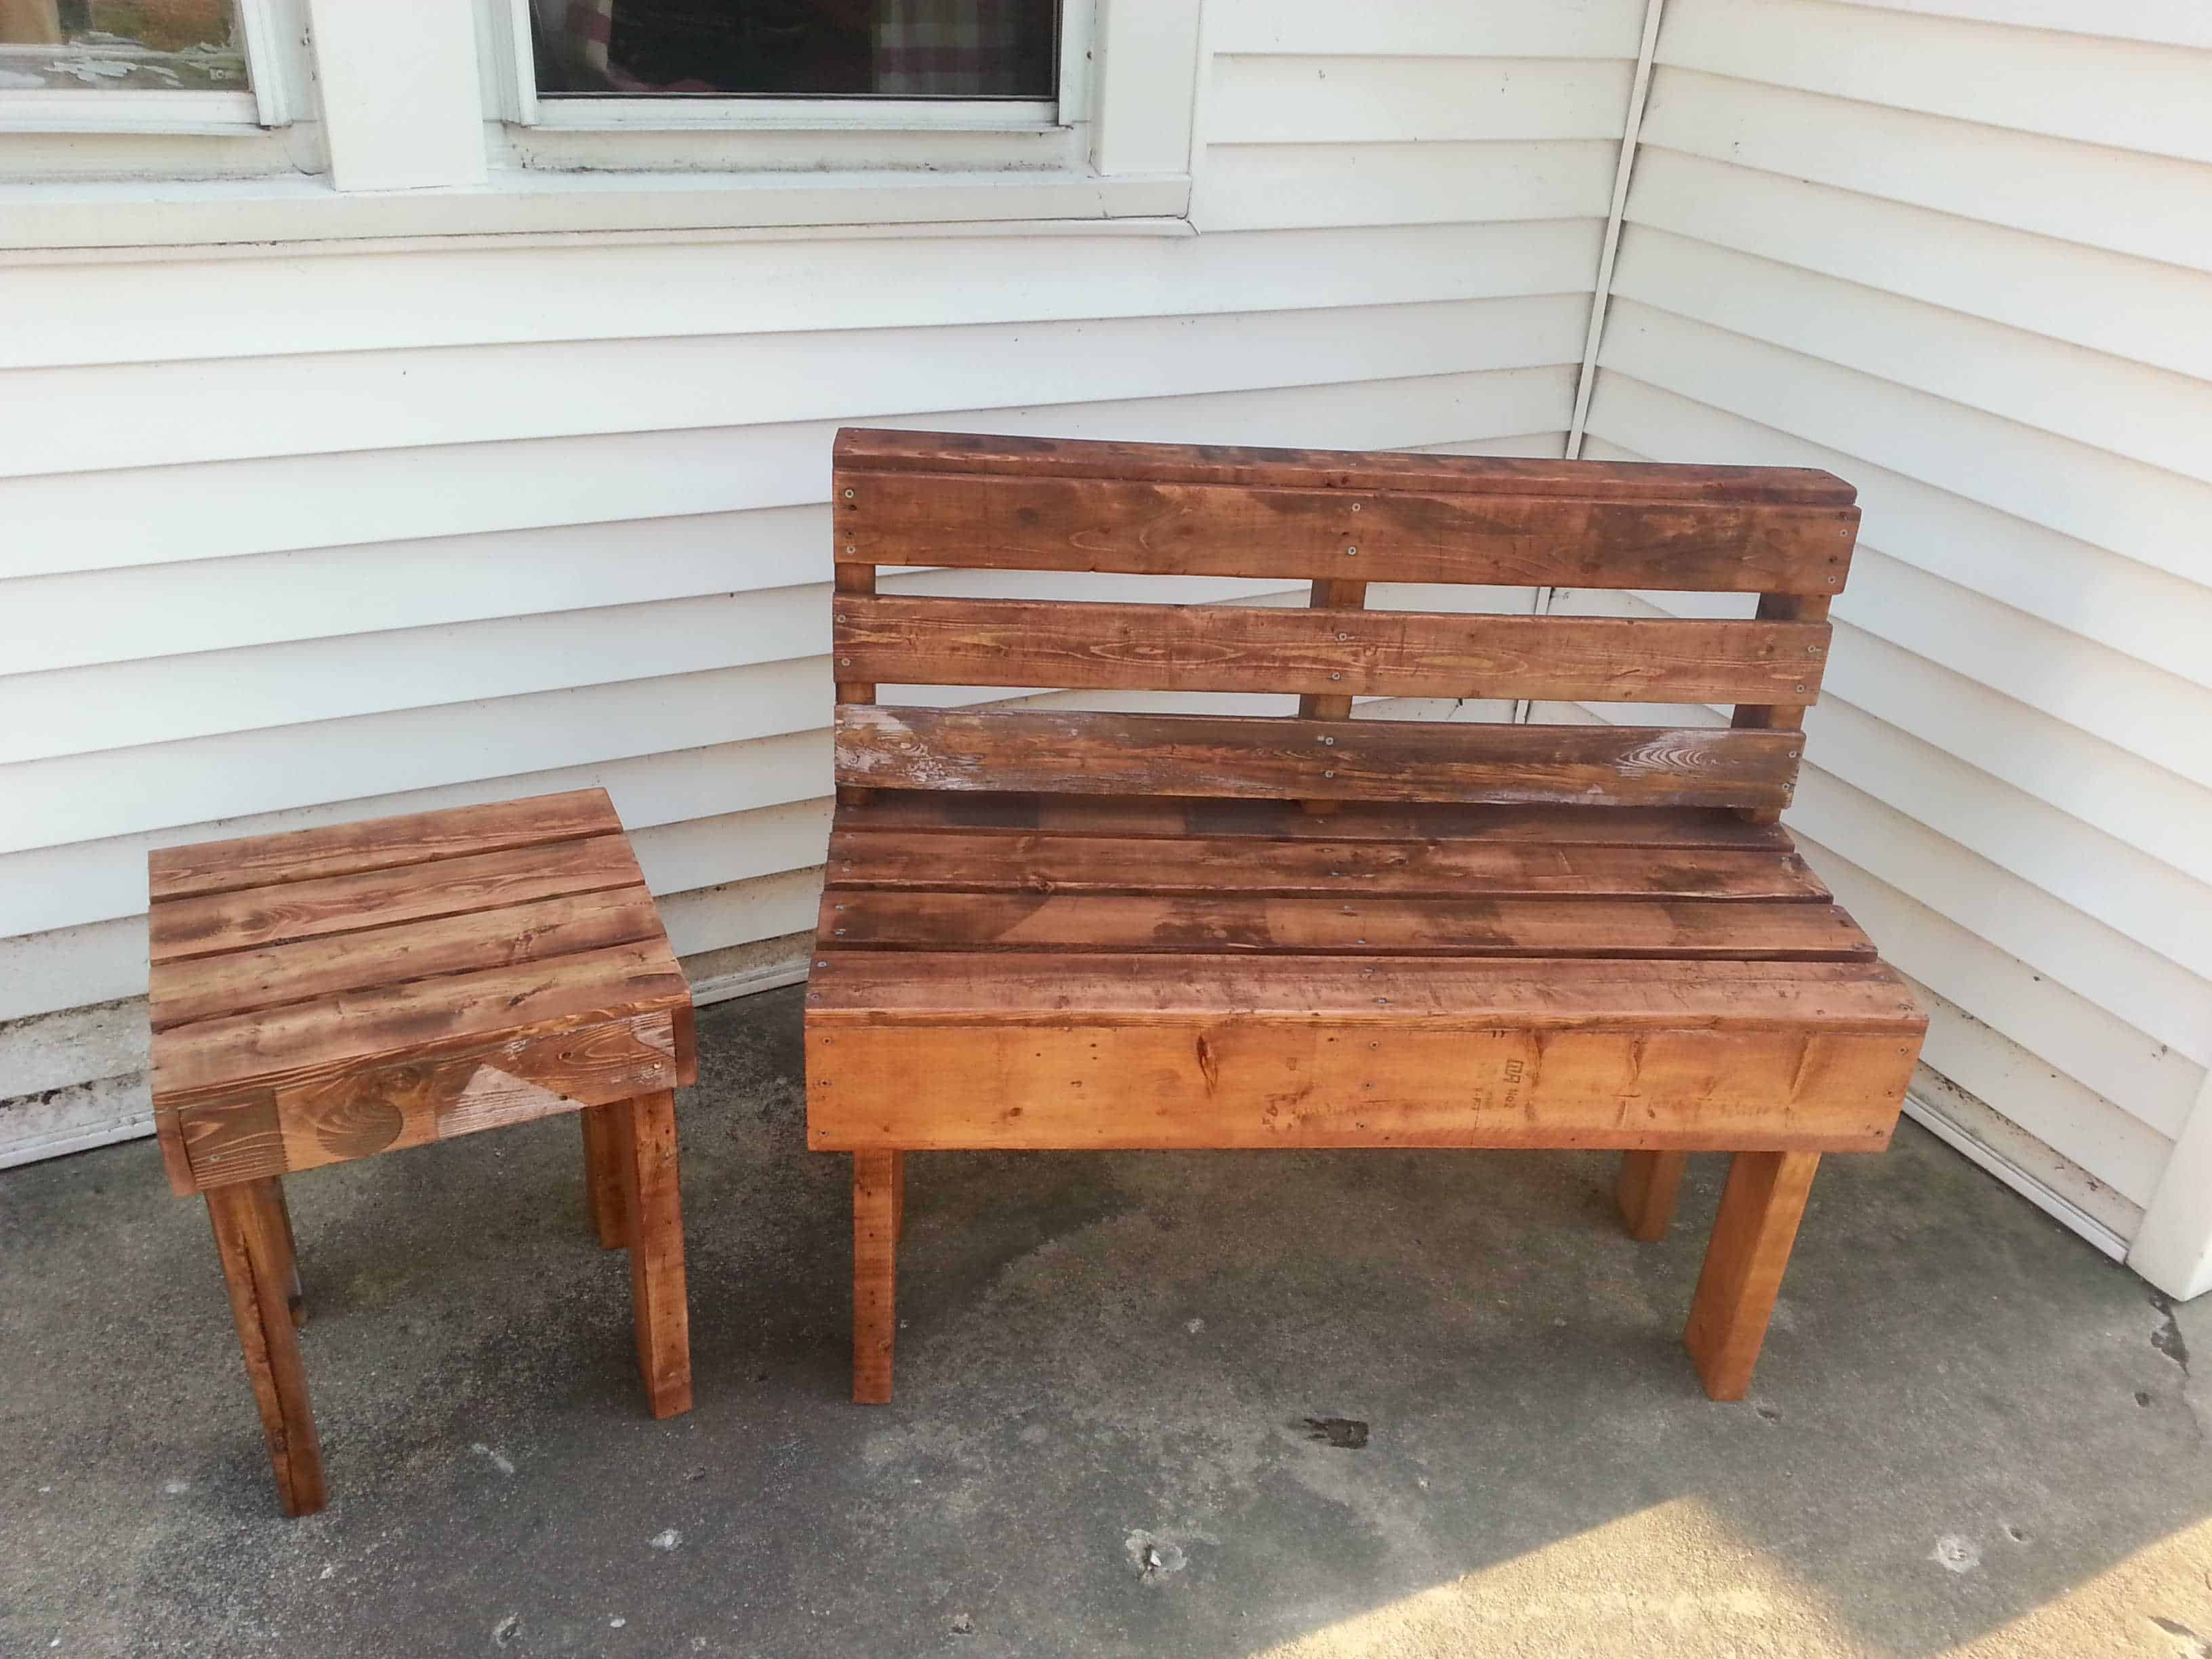 Pallet Bench amp Table Ideas 1001 Pallets